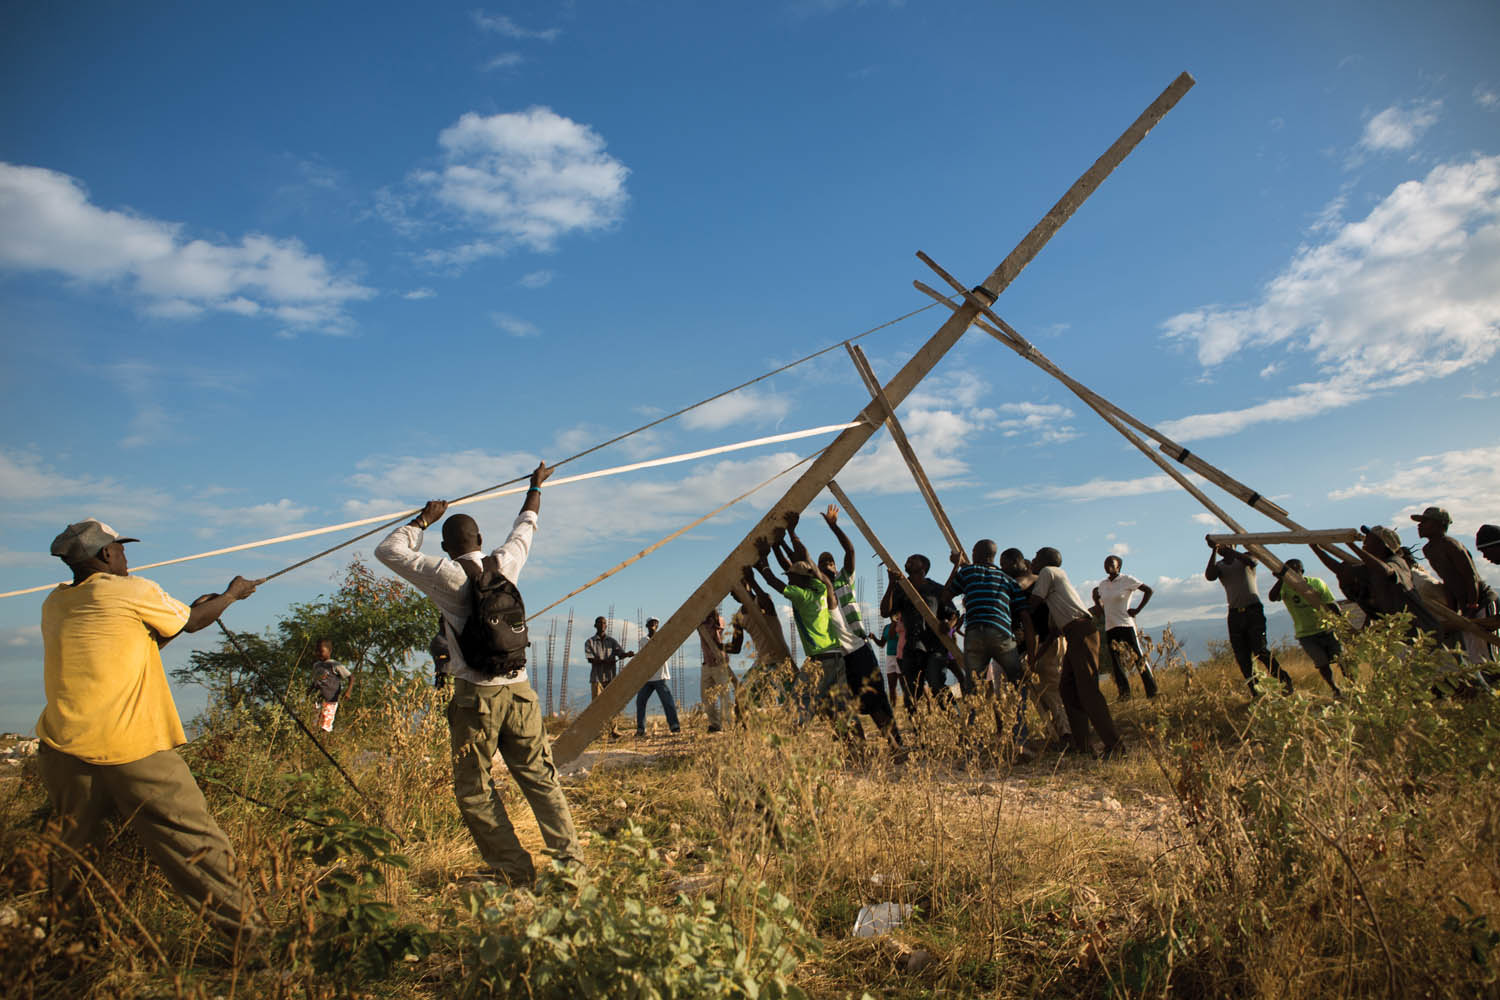 Residents of Canaan raise the first of three handmade utility poles, part of an improvised effort to receive electricity from the state power grid. Photo by Allison Shelley.